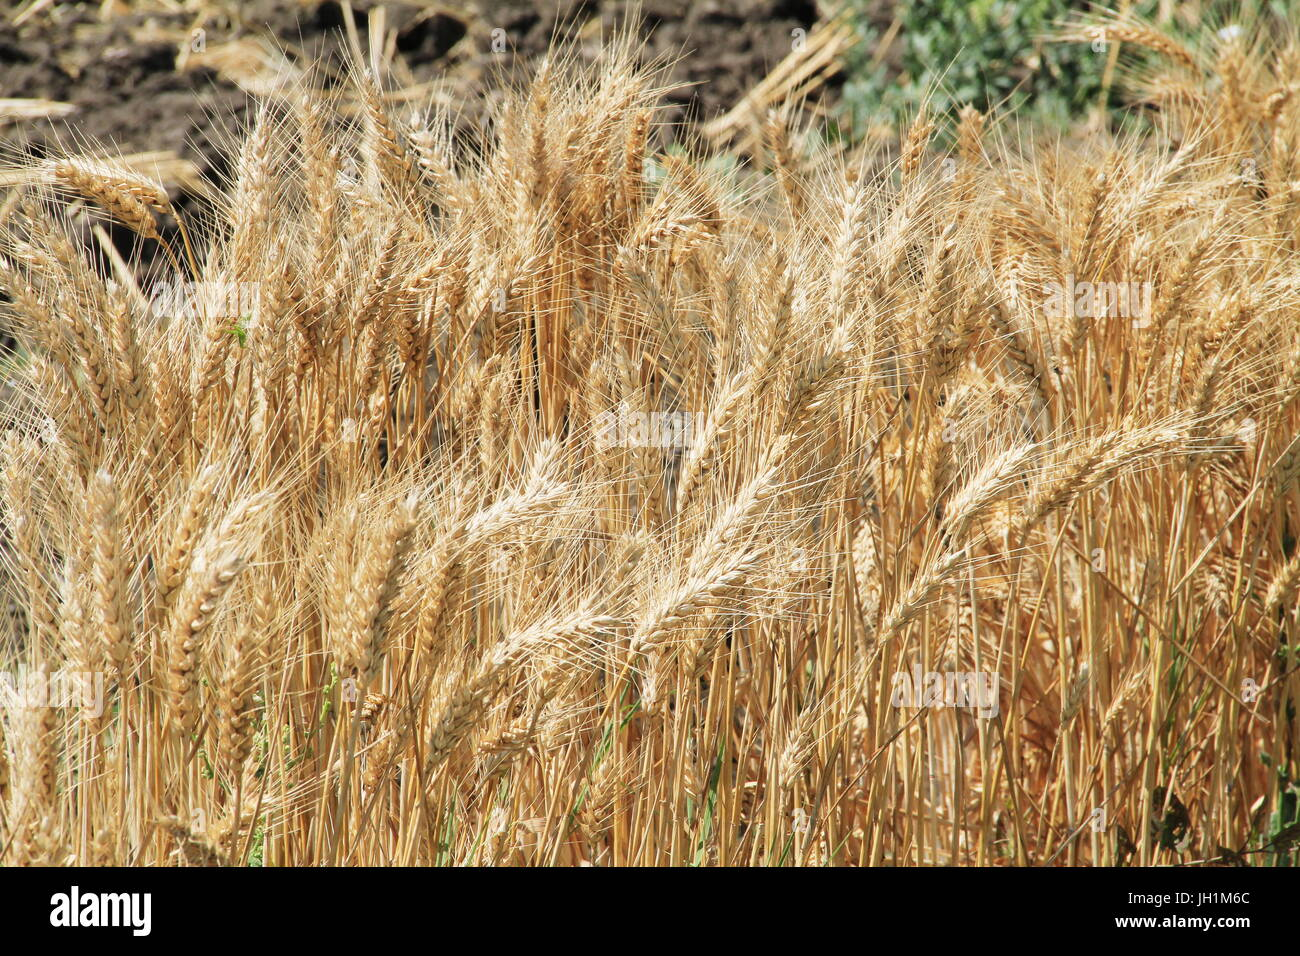 A picture or image showing a ready to harvest long eared wheat. - Stock Image